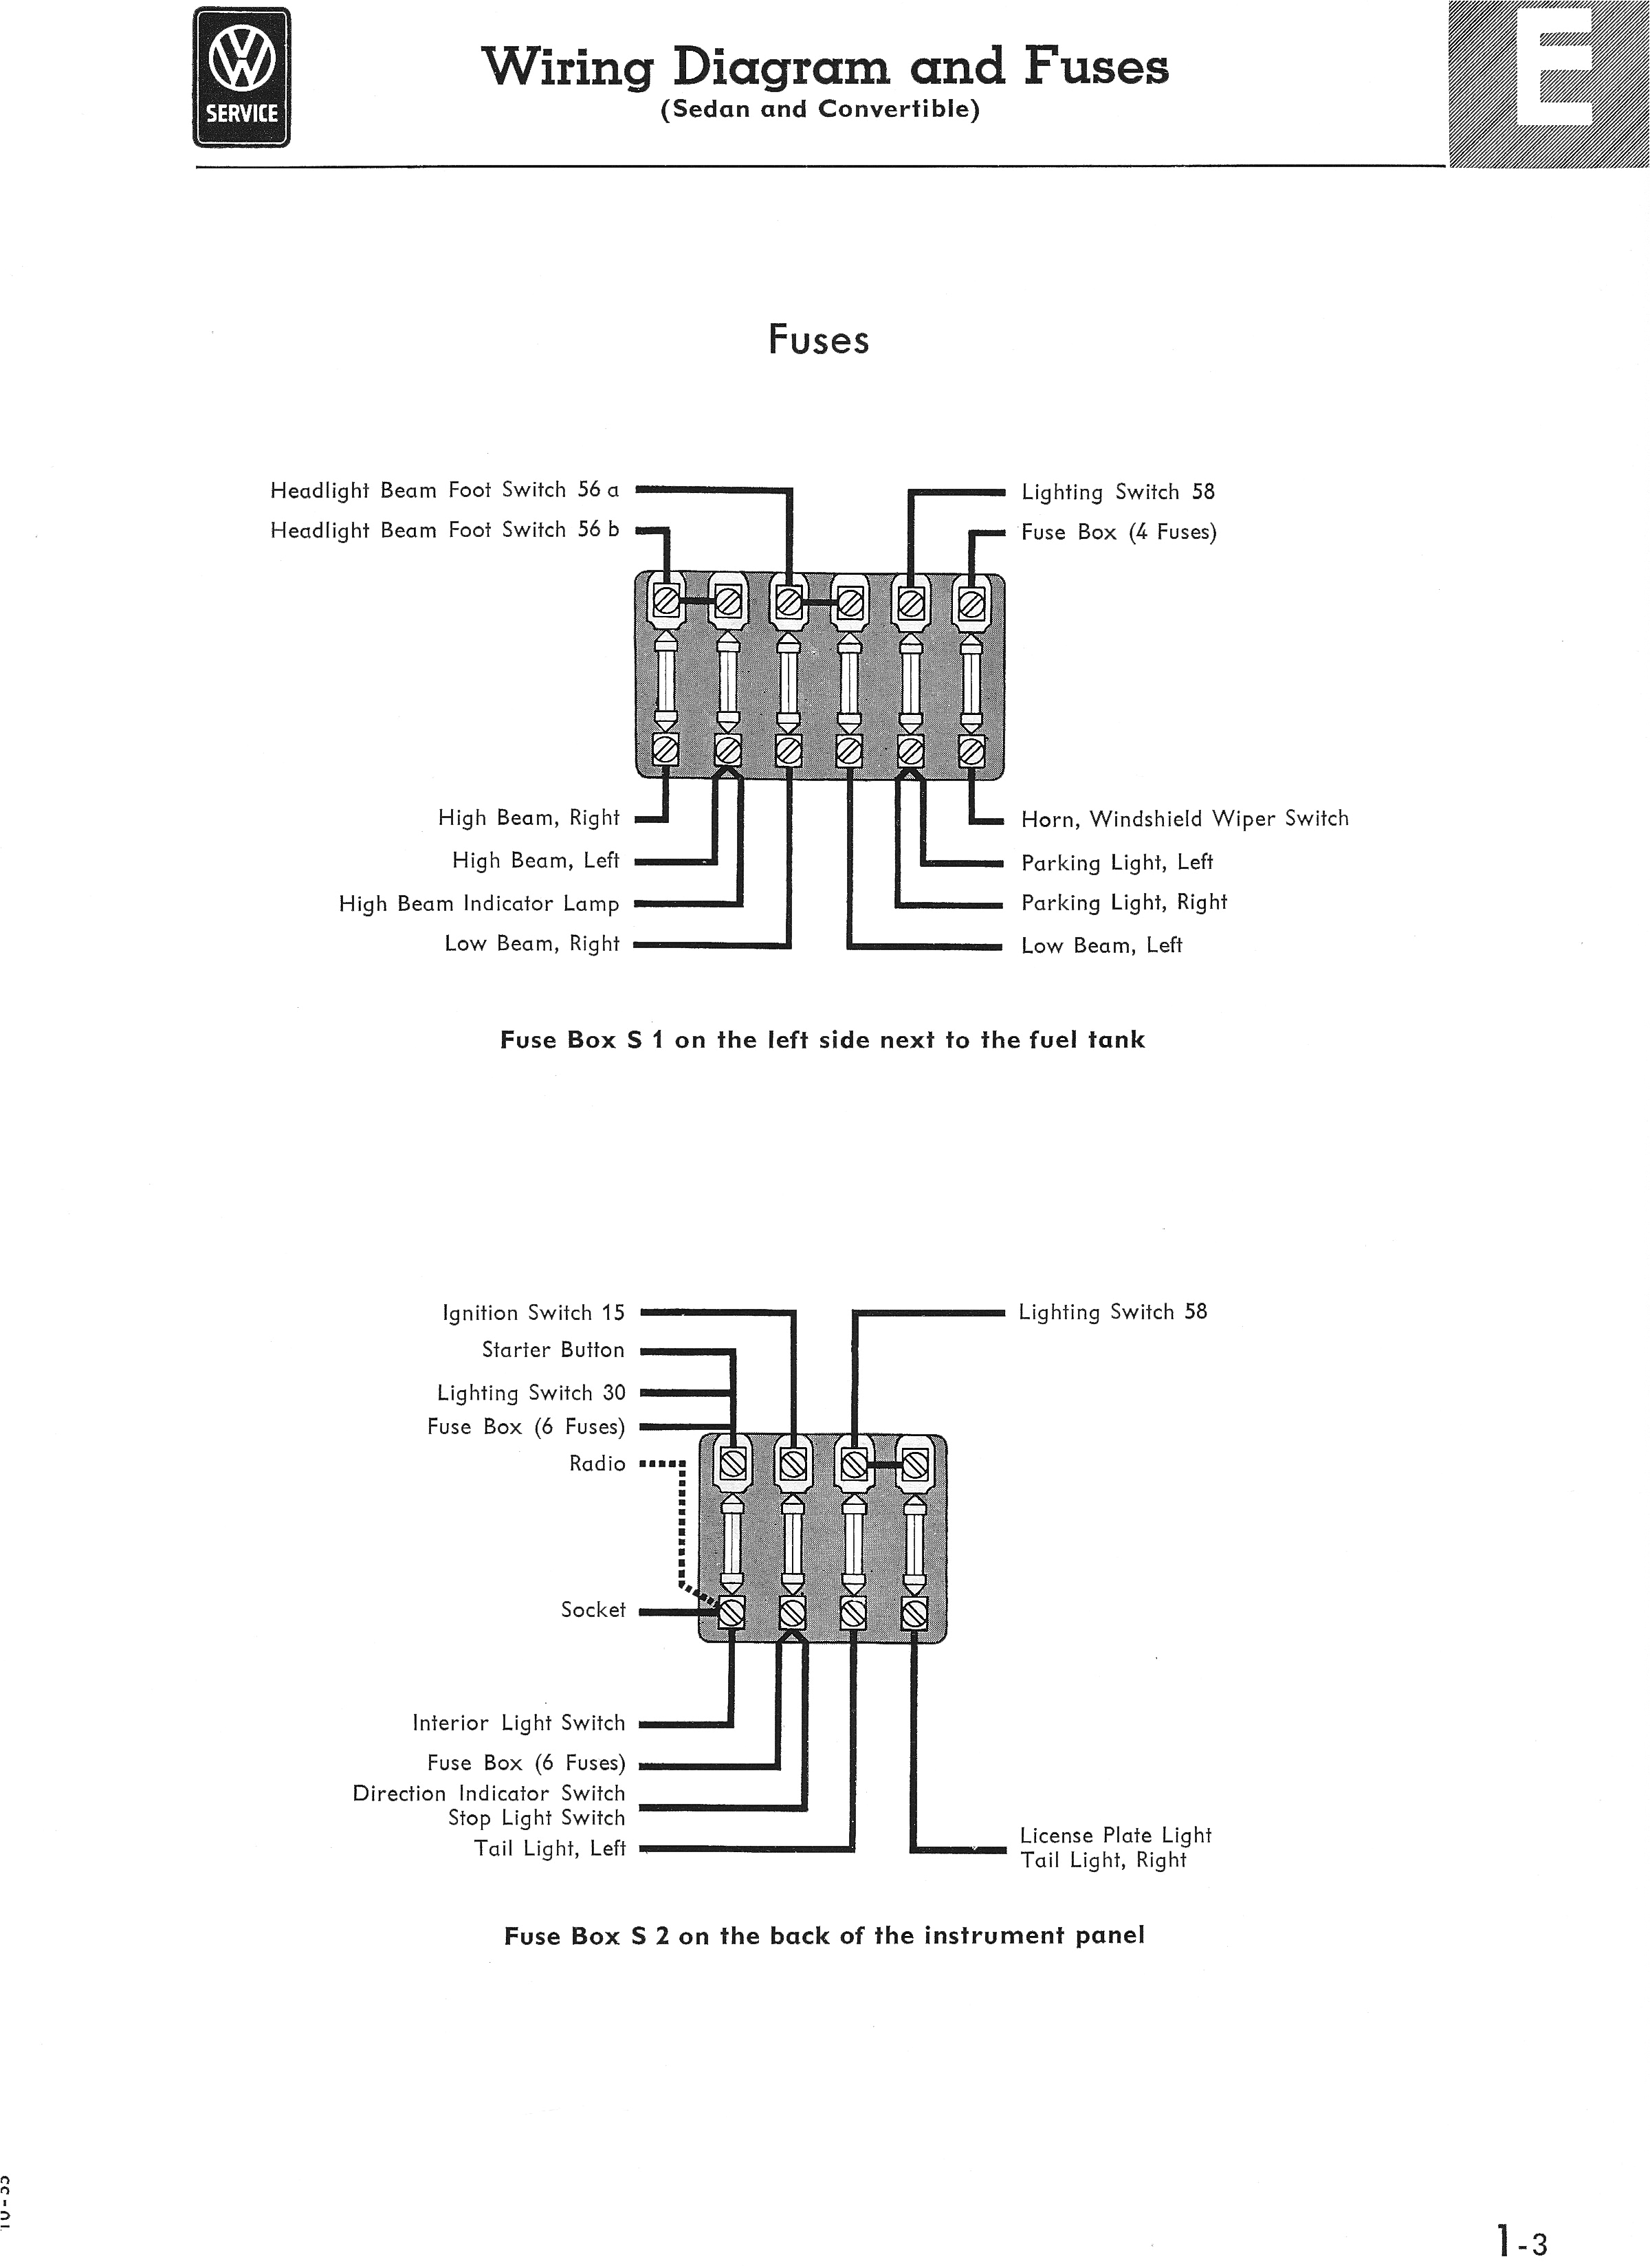 fuse box wiring diagram for 1974 super beetle wiring diagram blog fuse box wiring diagram for 1974 super beetle